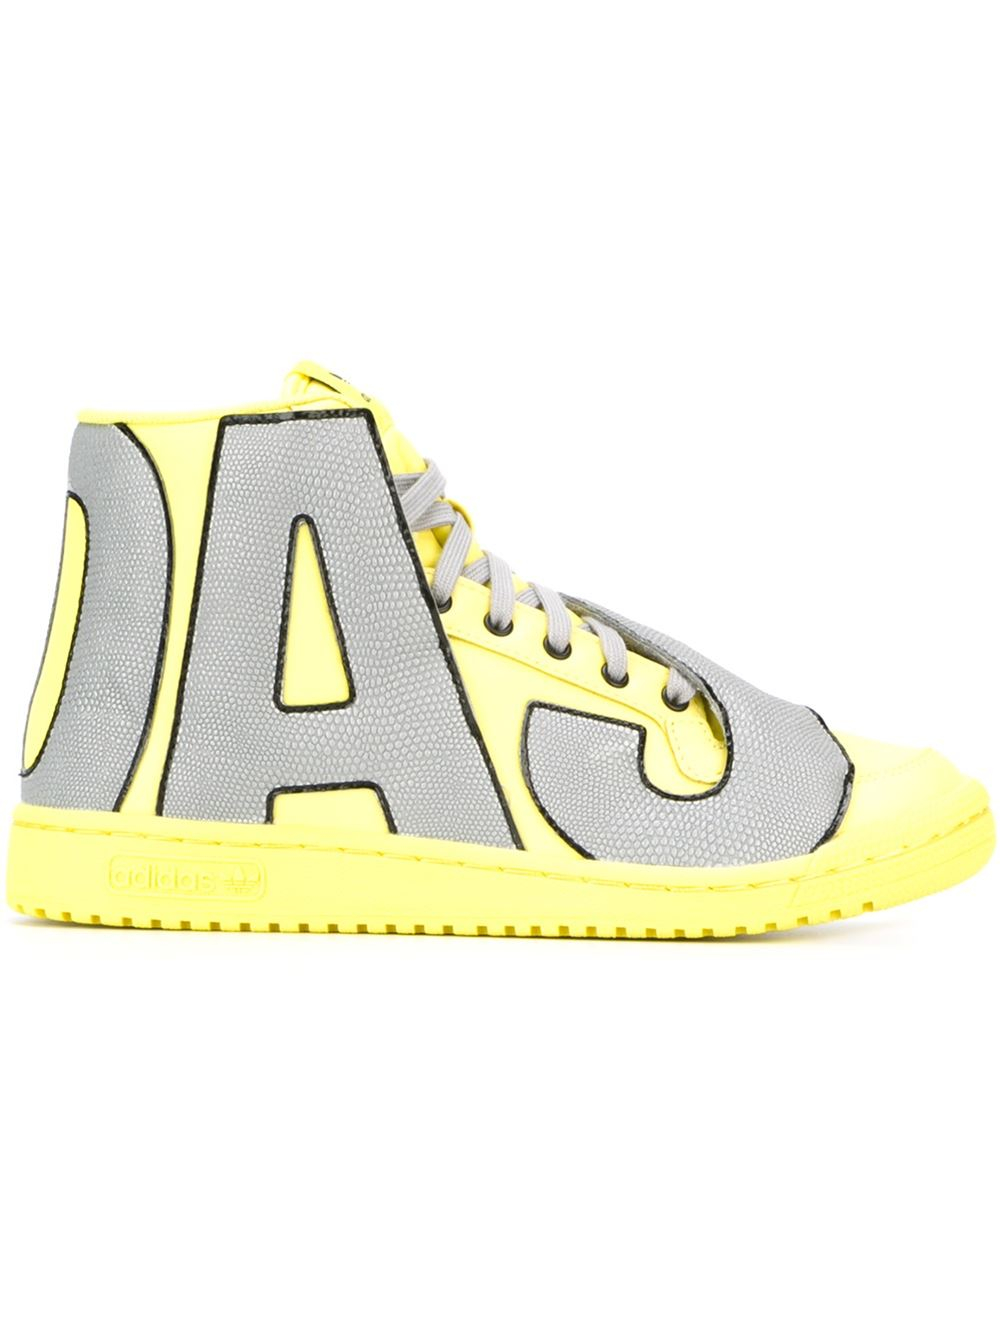 8f85cc84a654 Lyst - adidas Originals Jeremy Scott X  letters Reflective  Hi-top ...